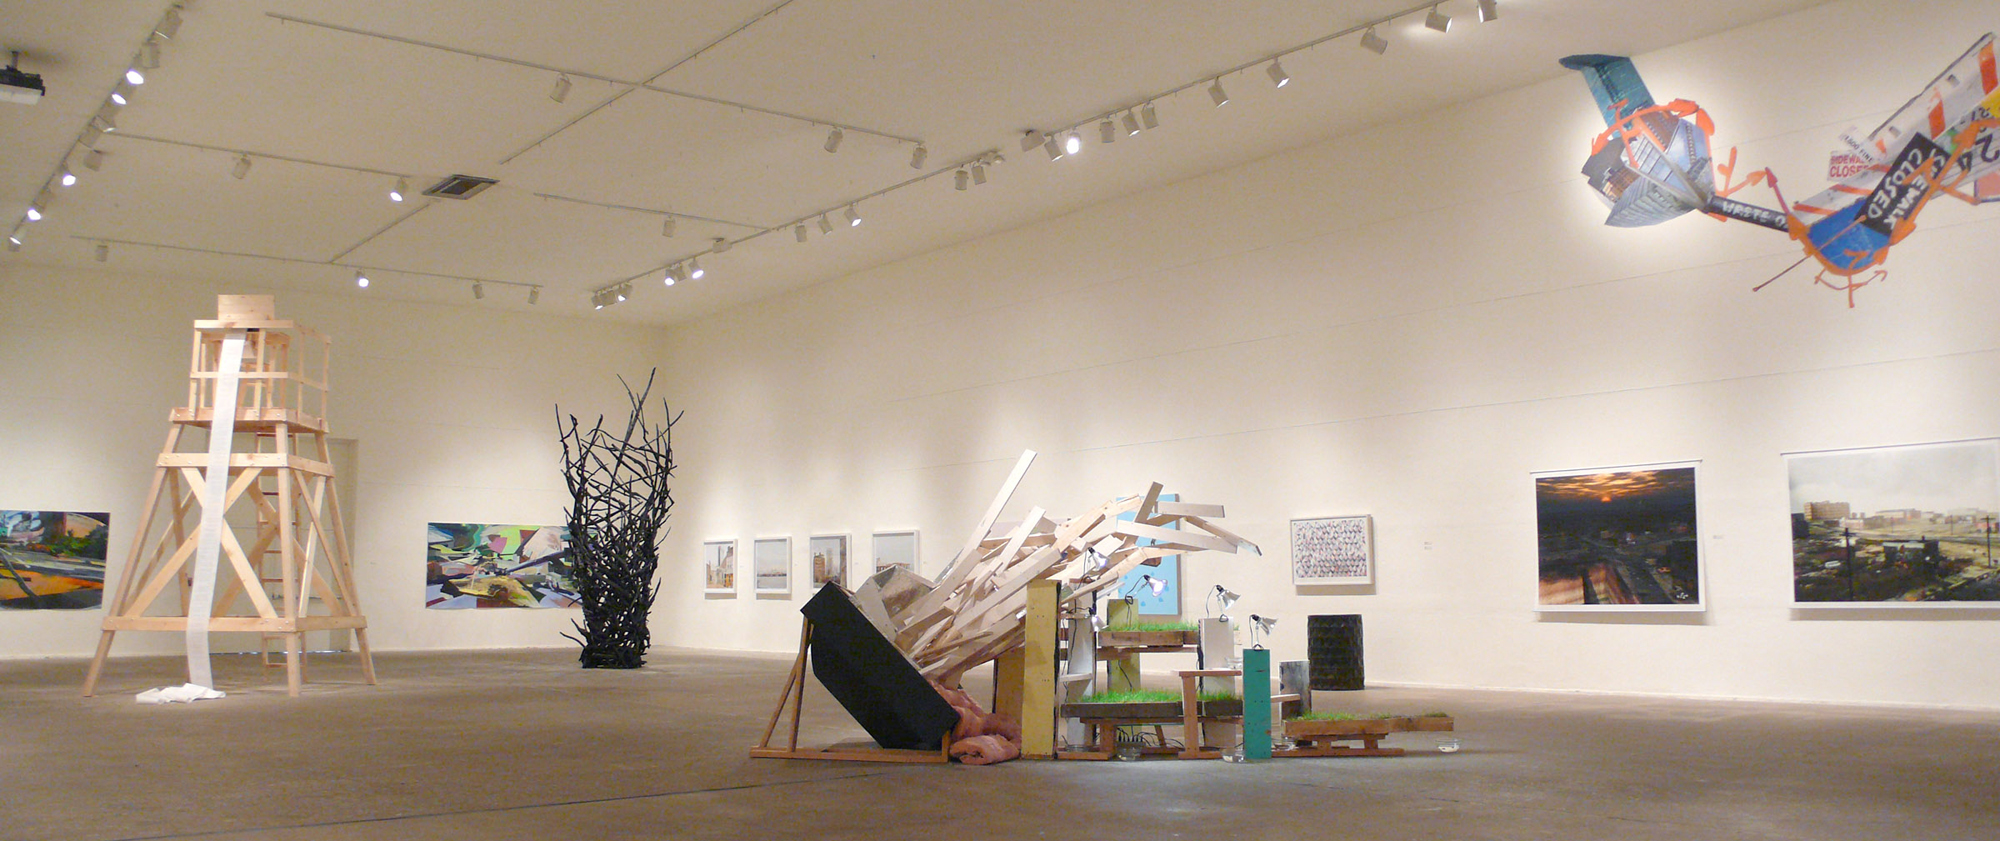 Construct at the Icebox, curated by Amie Potsic, artwork by cfeva fellows